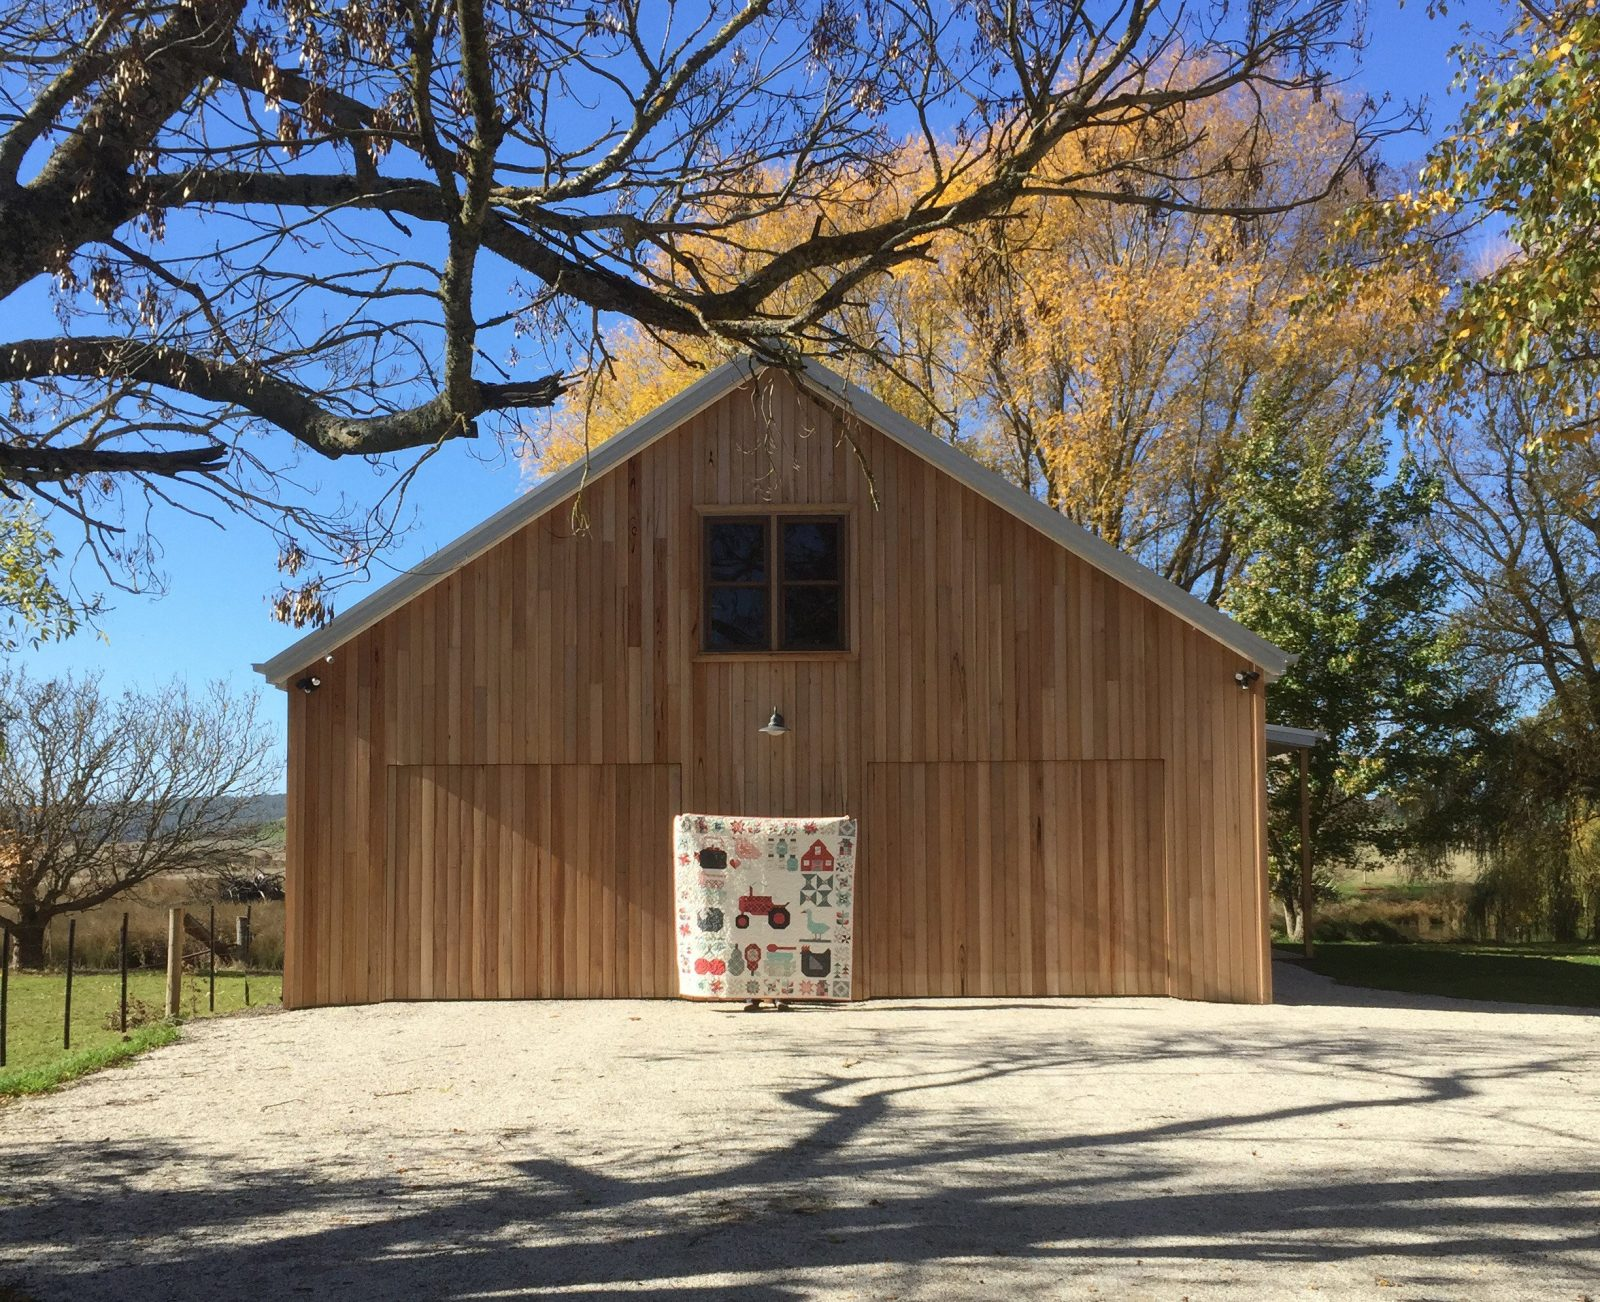 Said With Love Quilt Barn with quilt in front and rural setting